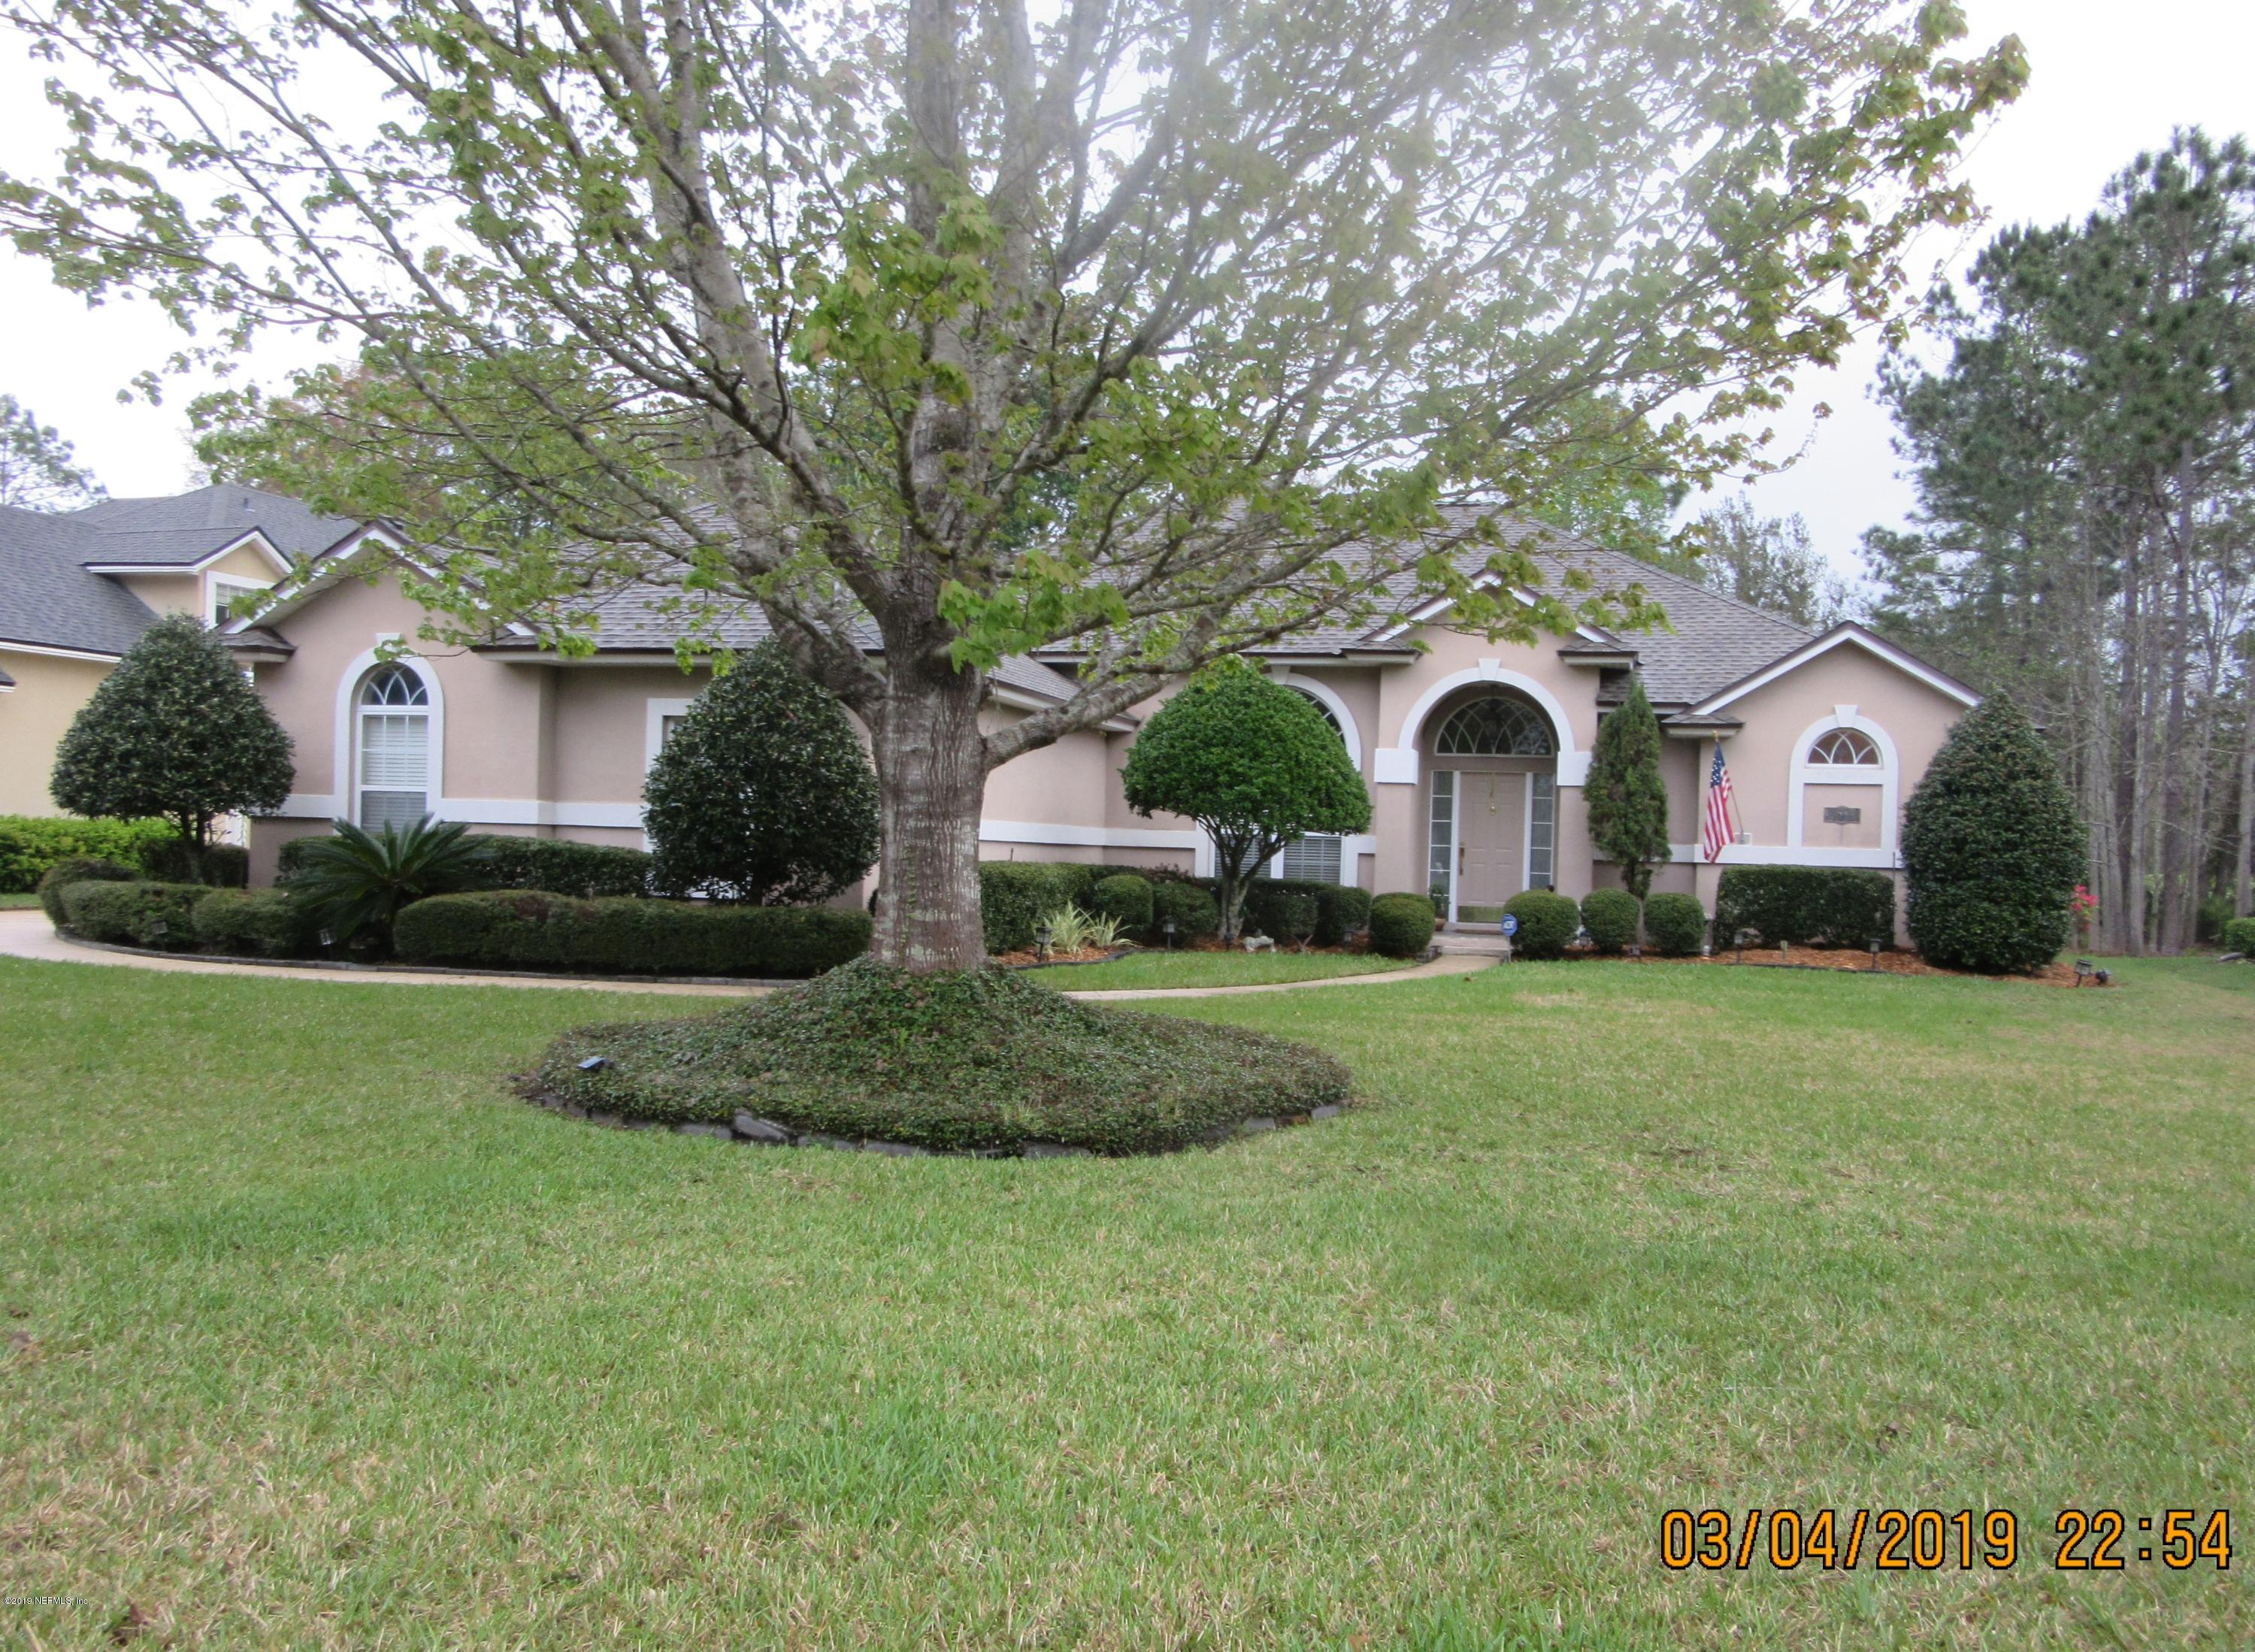 2602 COUNTRY CLUB, ORANGE PARK, FLORIDA 32073, 4 Bedrooms Bedrooms, ,3 BathroomsBathrooms,Residential - single family,For sale,COUNTRY CLUB,986017